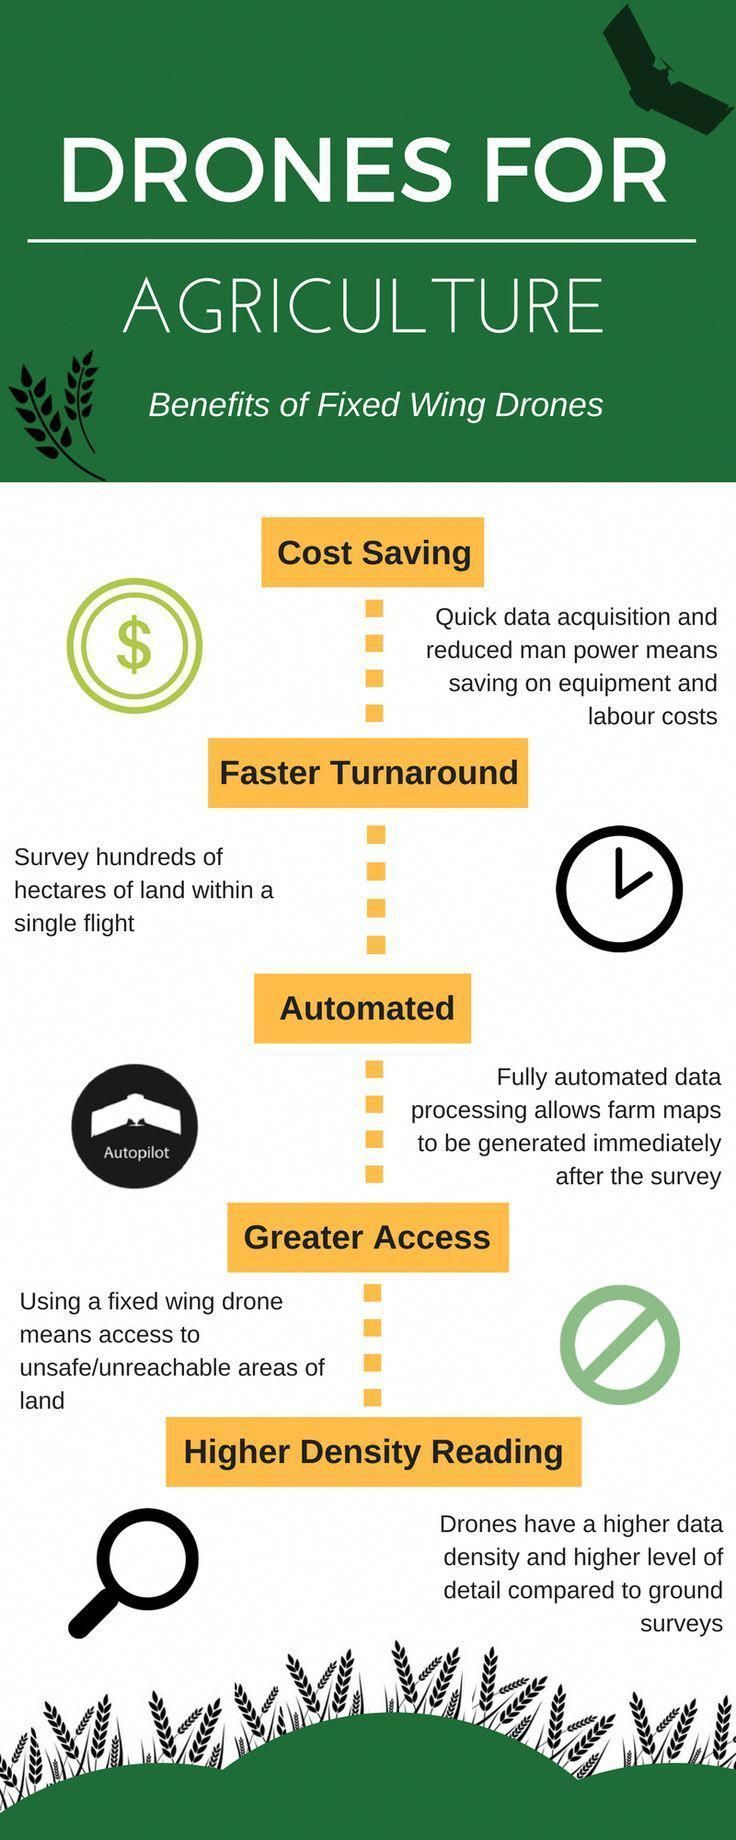 #Drones for Agriculture #infographic #droneaerialphotography